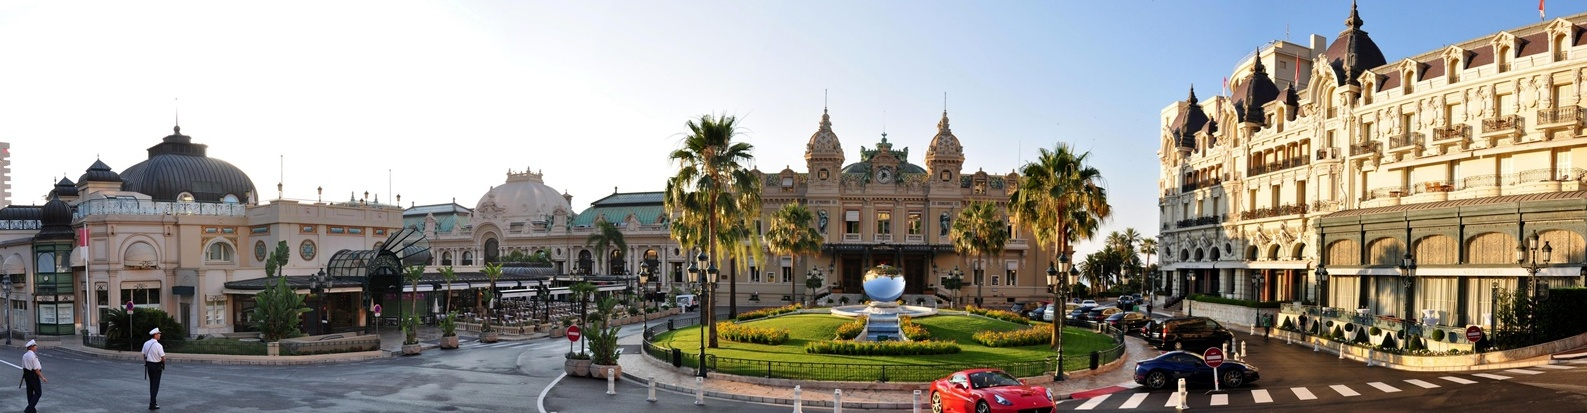 Panorama with the casino building in Monte Carlo in the center.